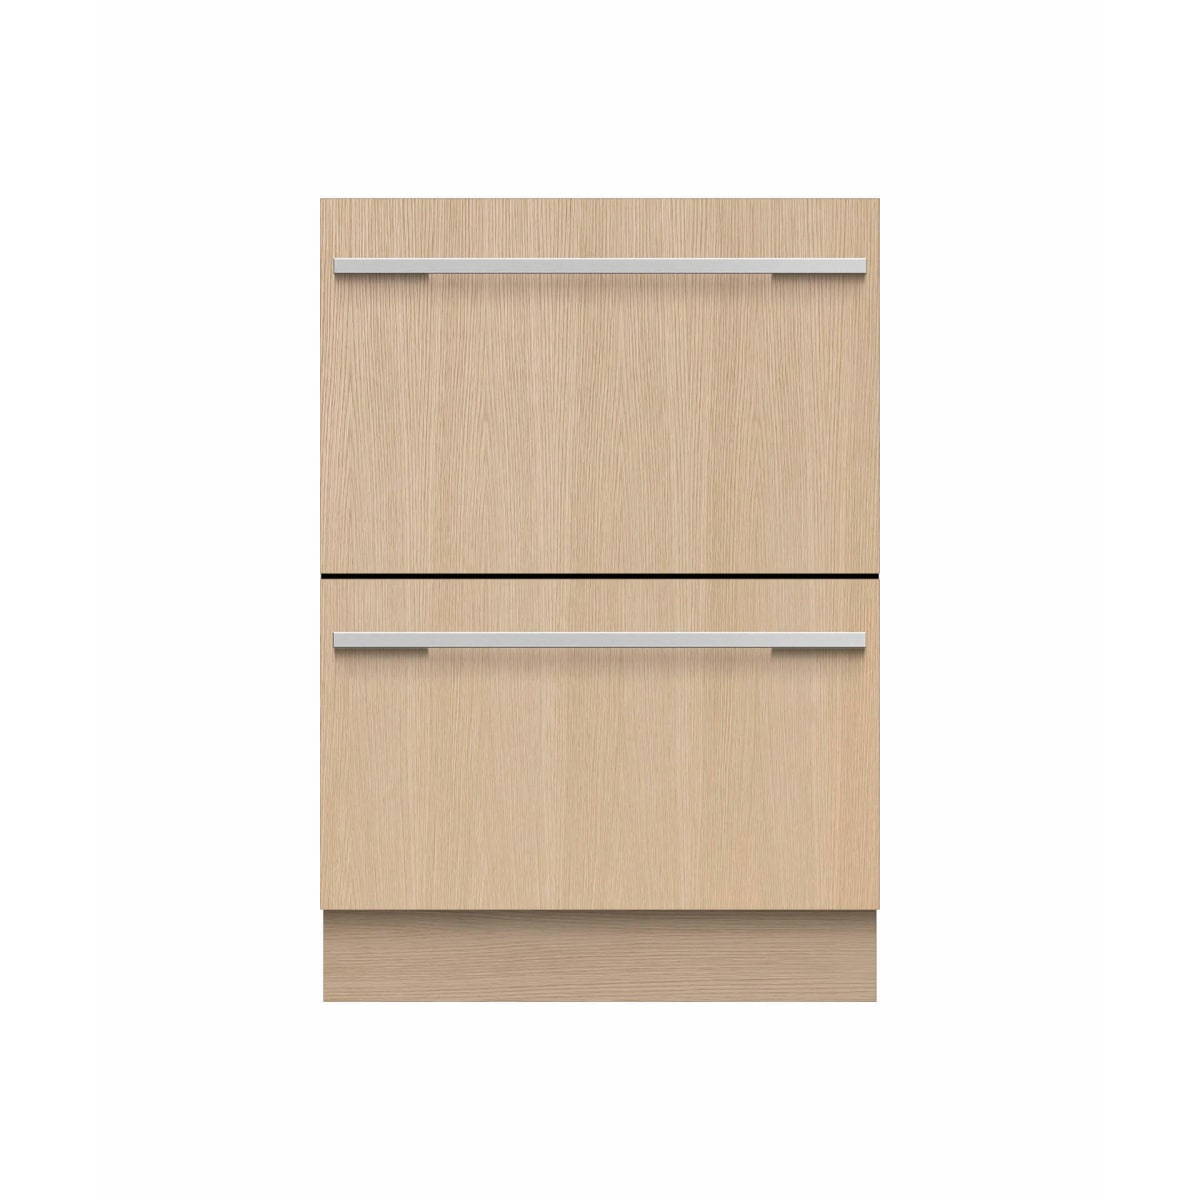 Fisher and Paykel DishDrawer 24 Inch